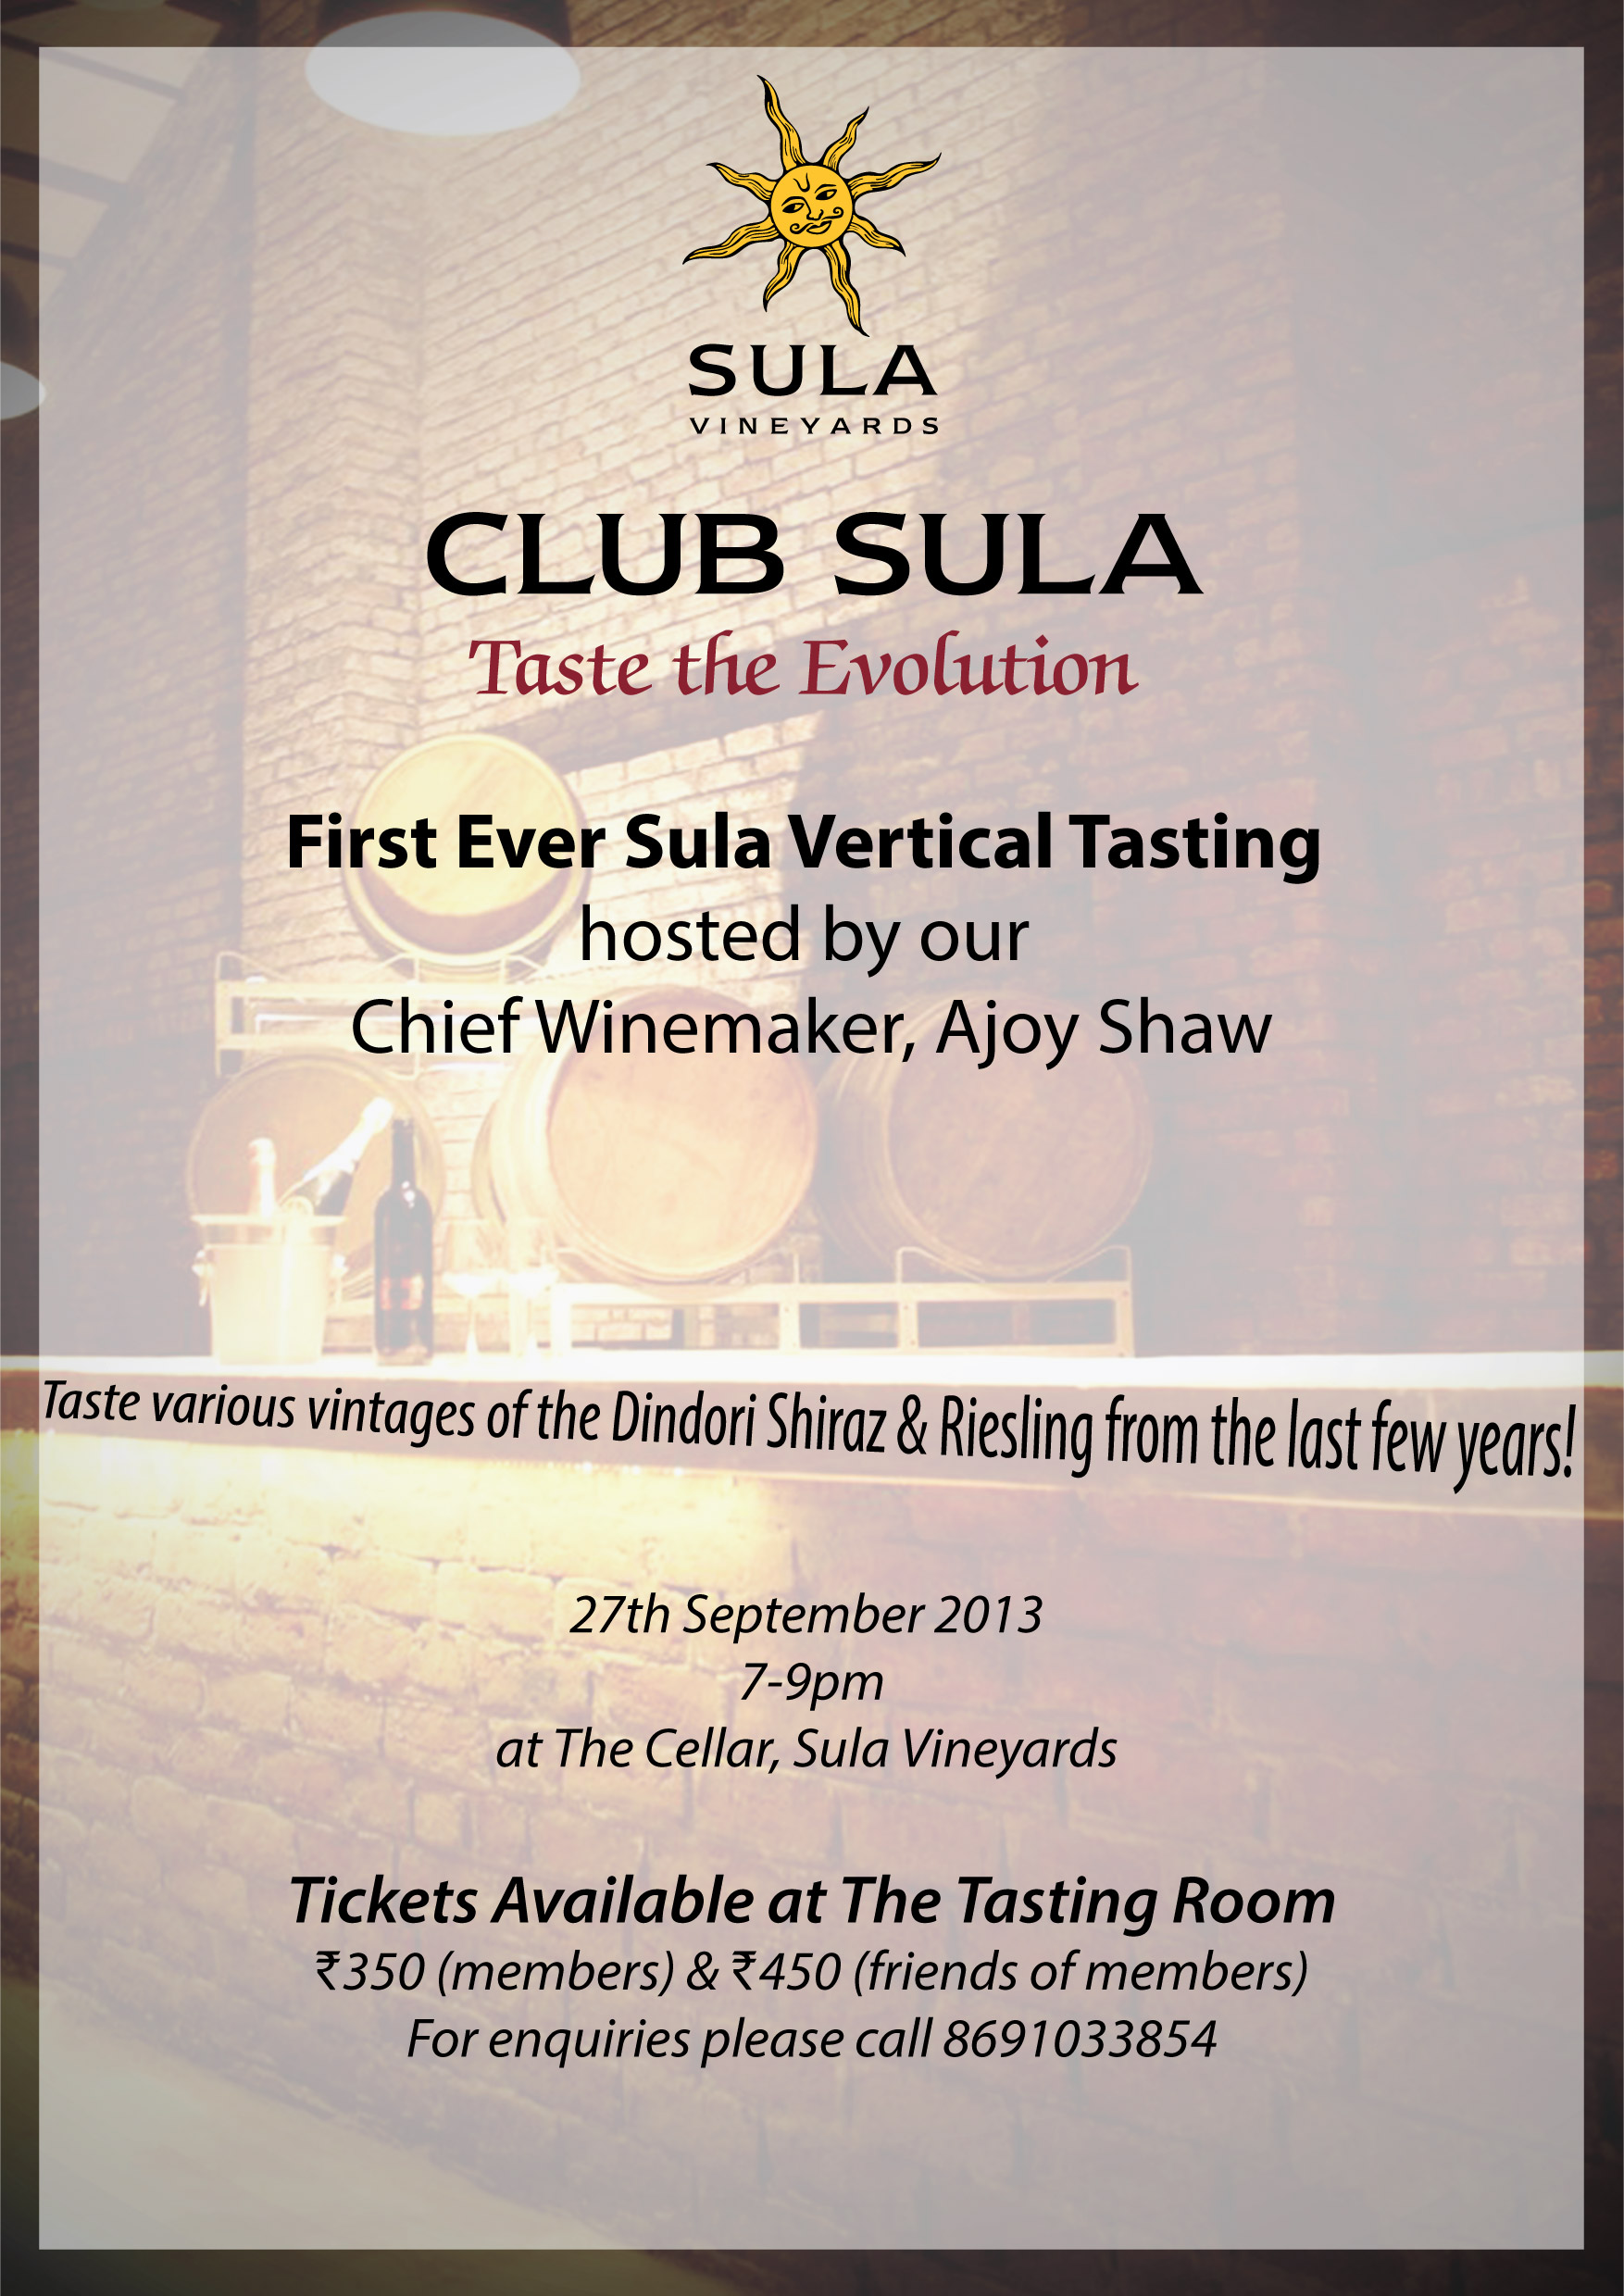 First Ever Sula Vertical Tasting